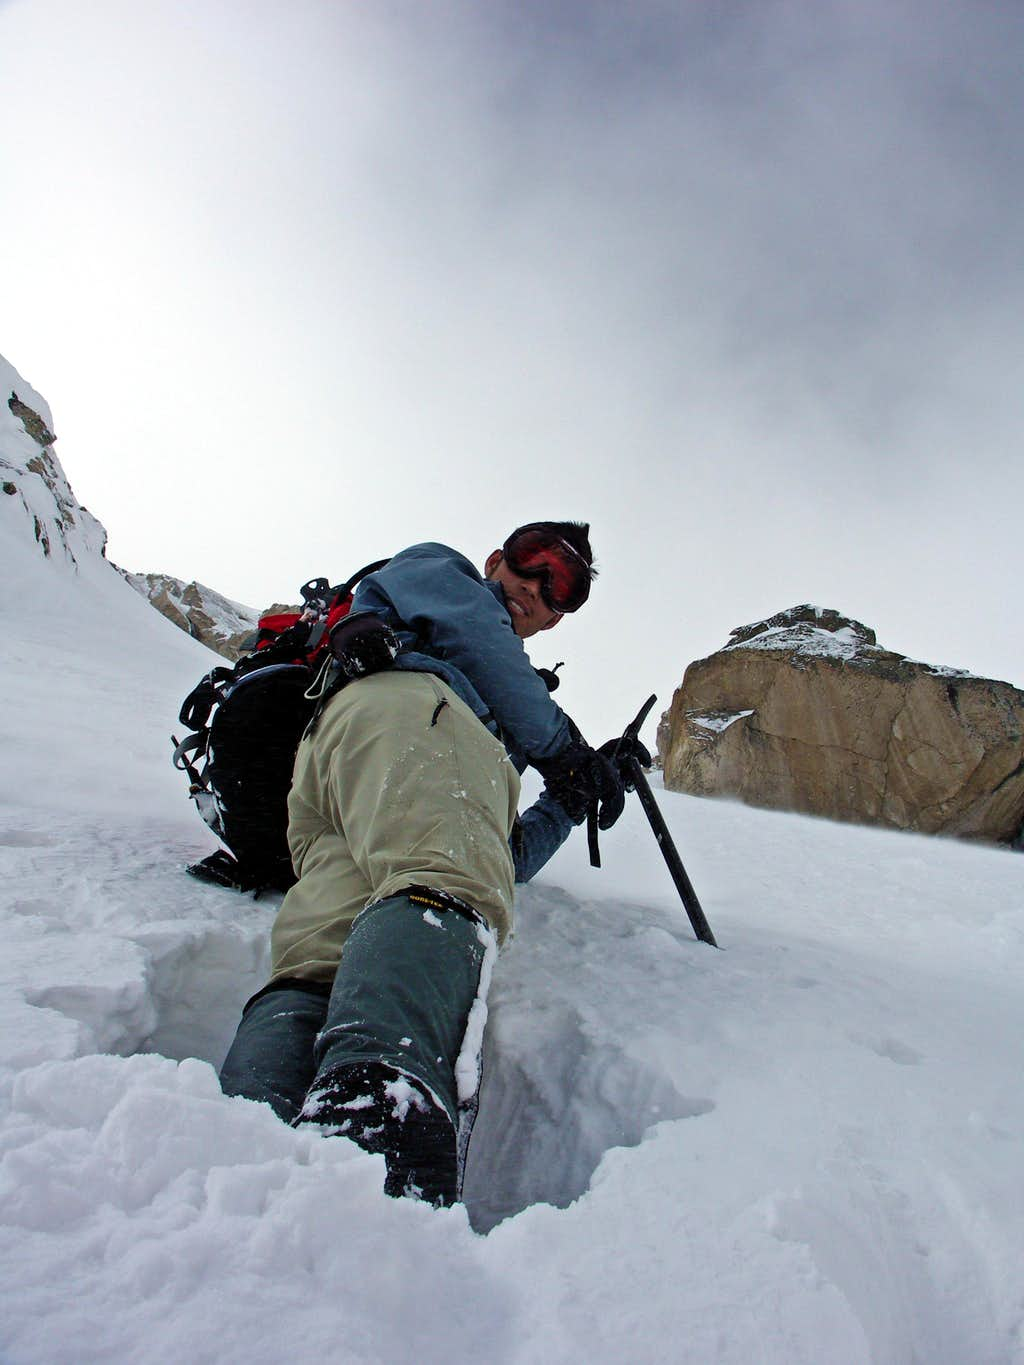 Looks Steep